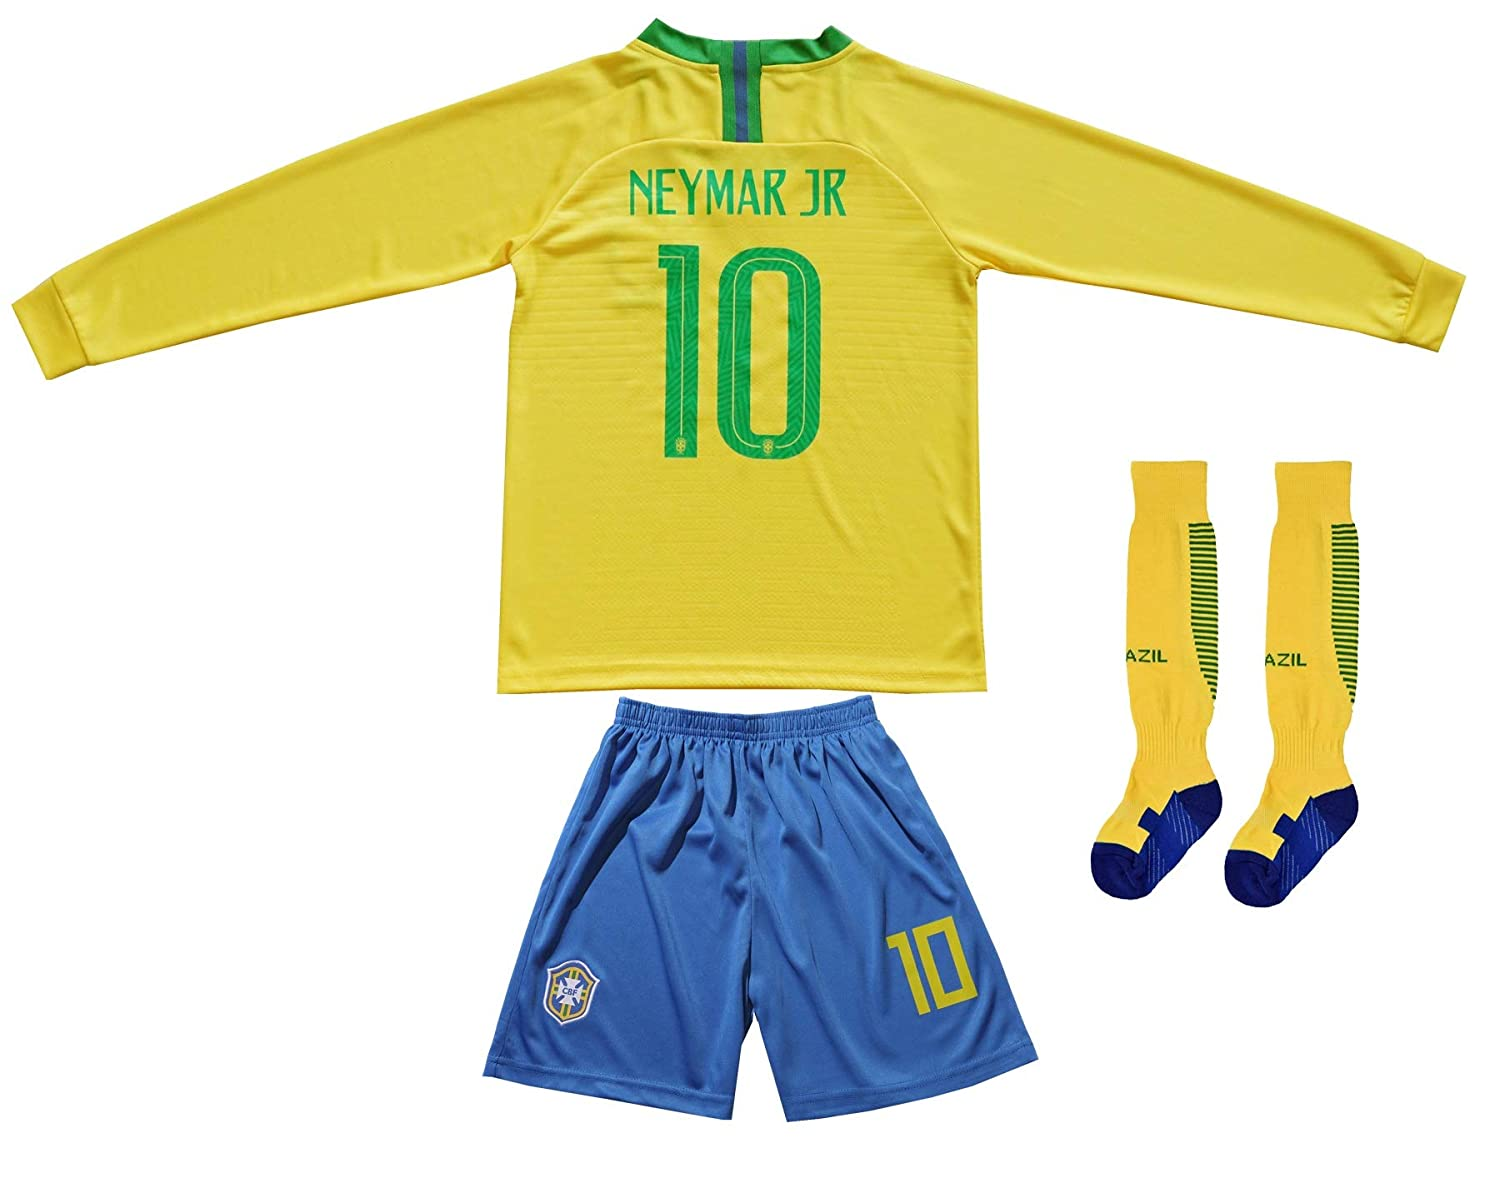 cc89277a7 Amazon.com   FCB BRAZIL NEYMAR JR  10 Home Football Soccer Kids Jersey  Short Socks Set Youth Sizes   Sports   Outdoors